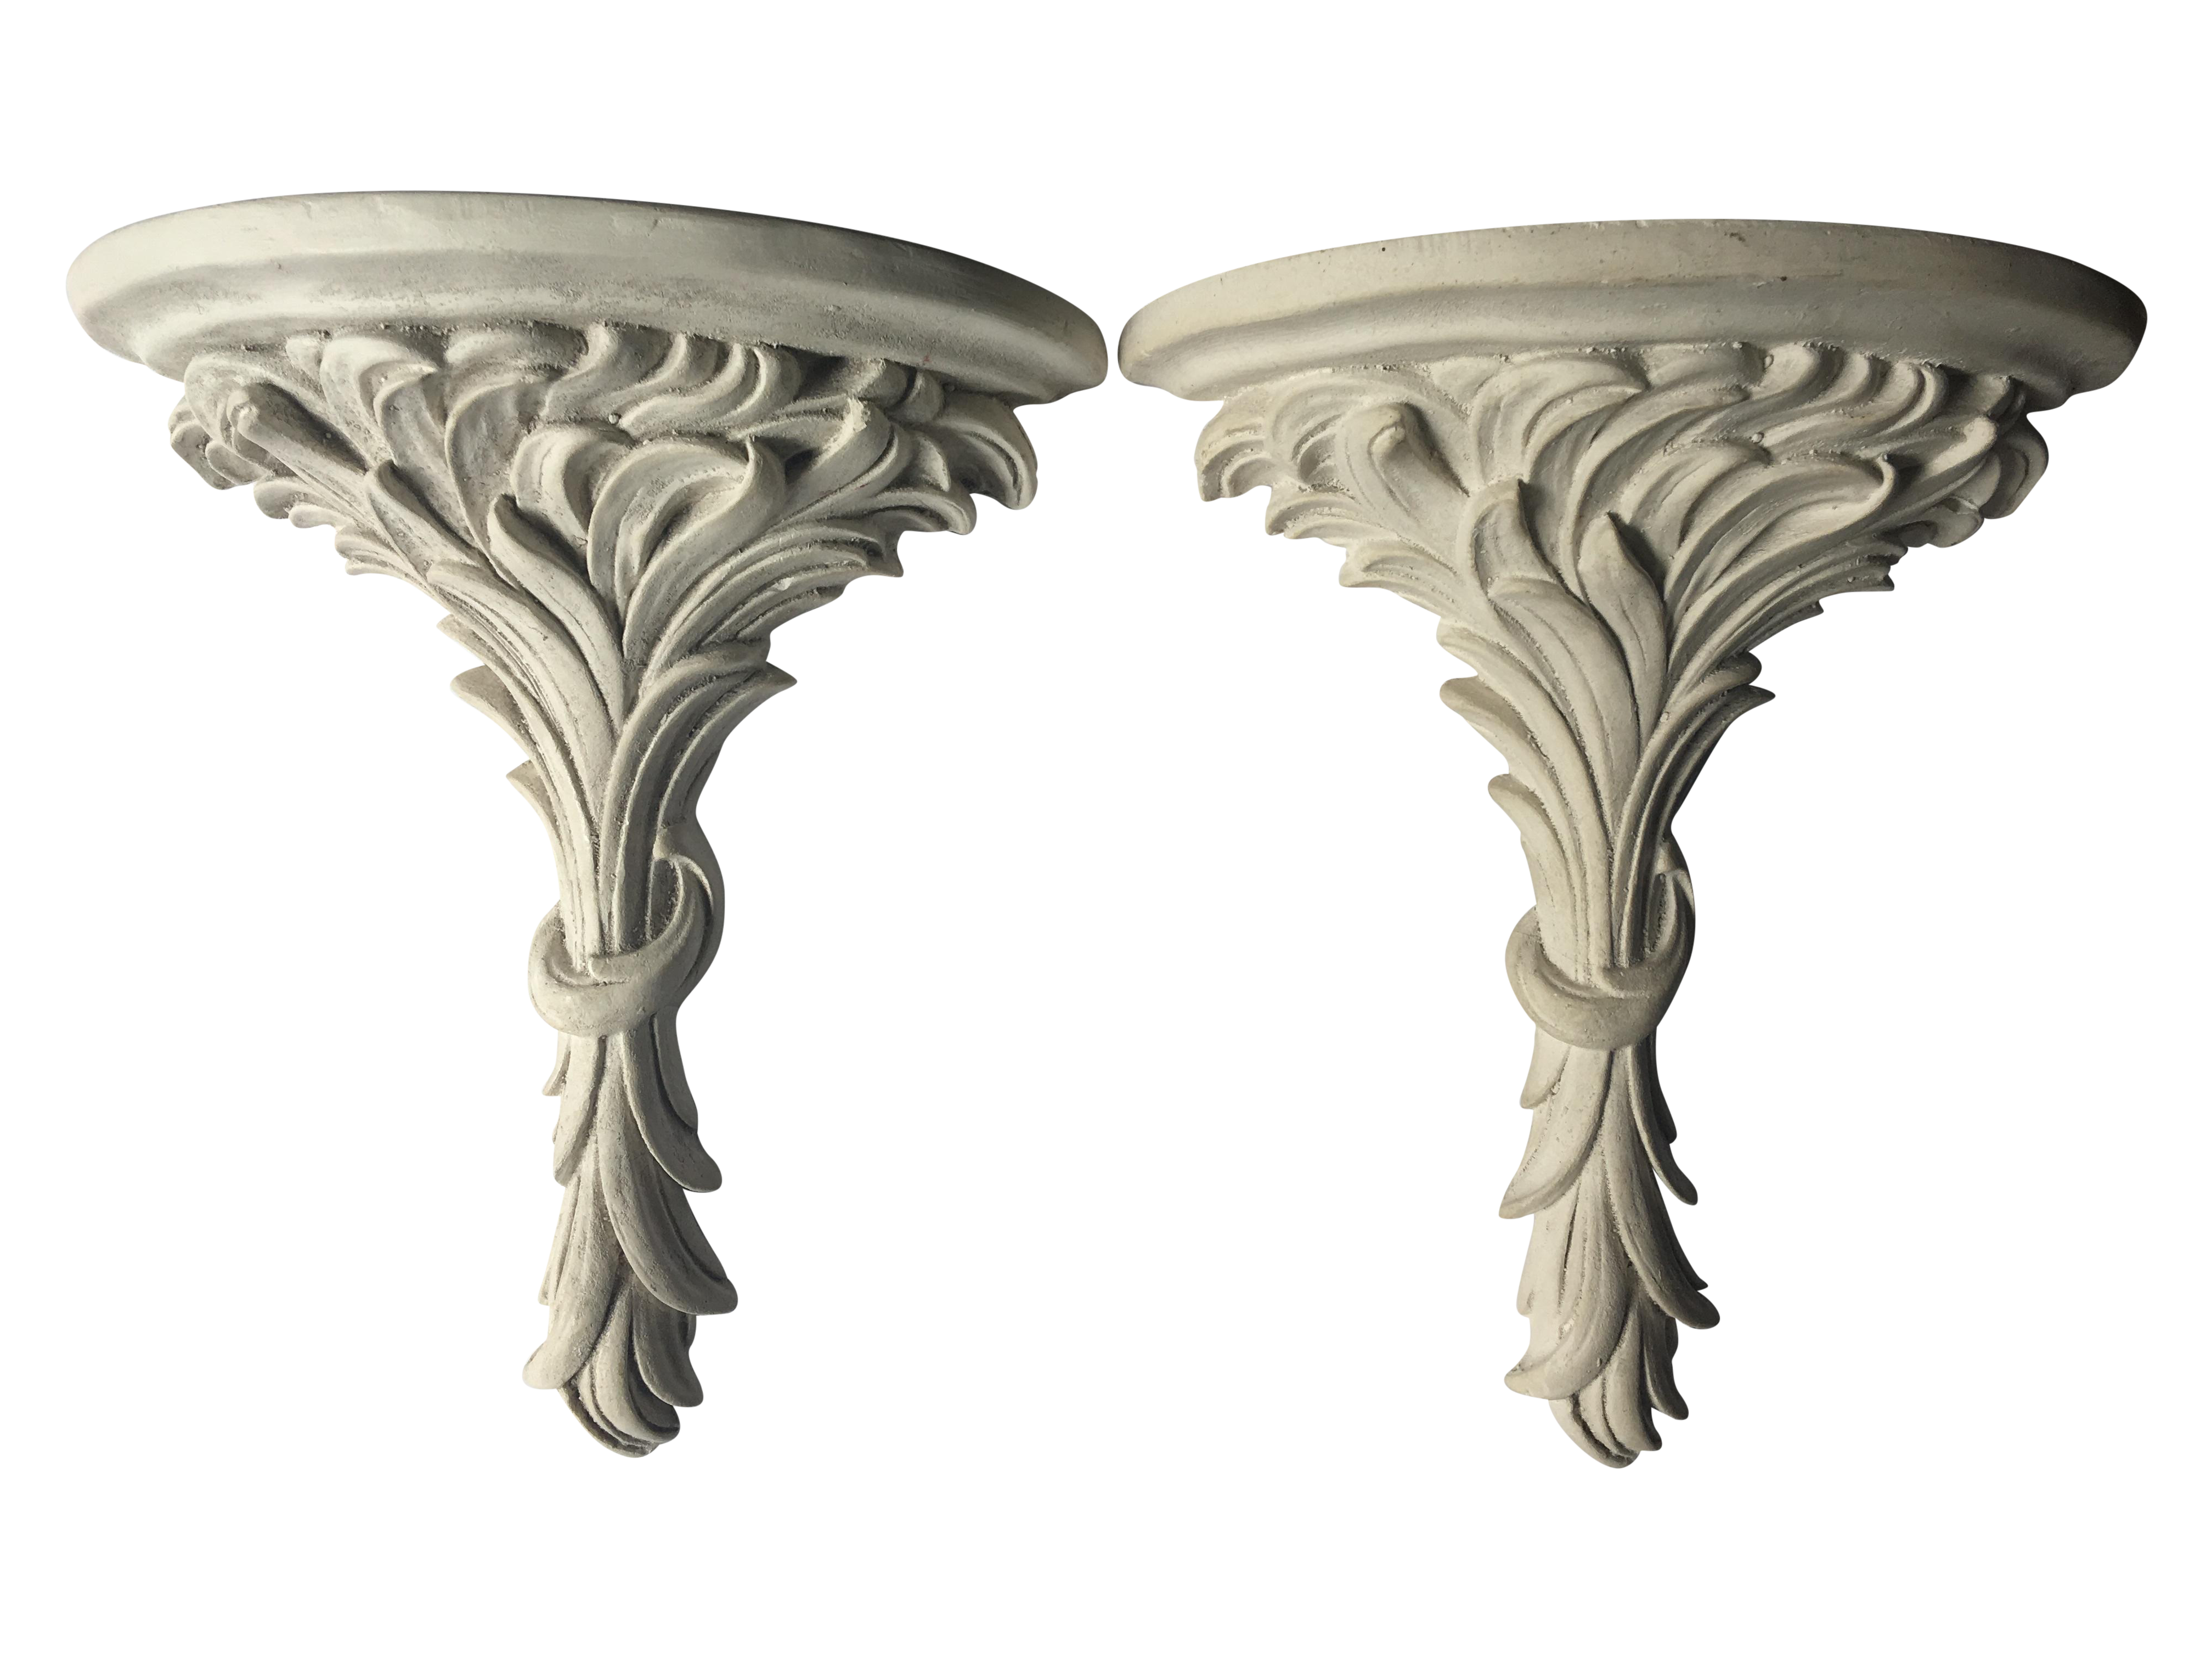 White rococo wall sconce shelves a pair chairish amipublicfo Gallery